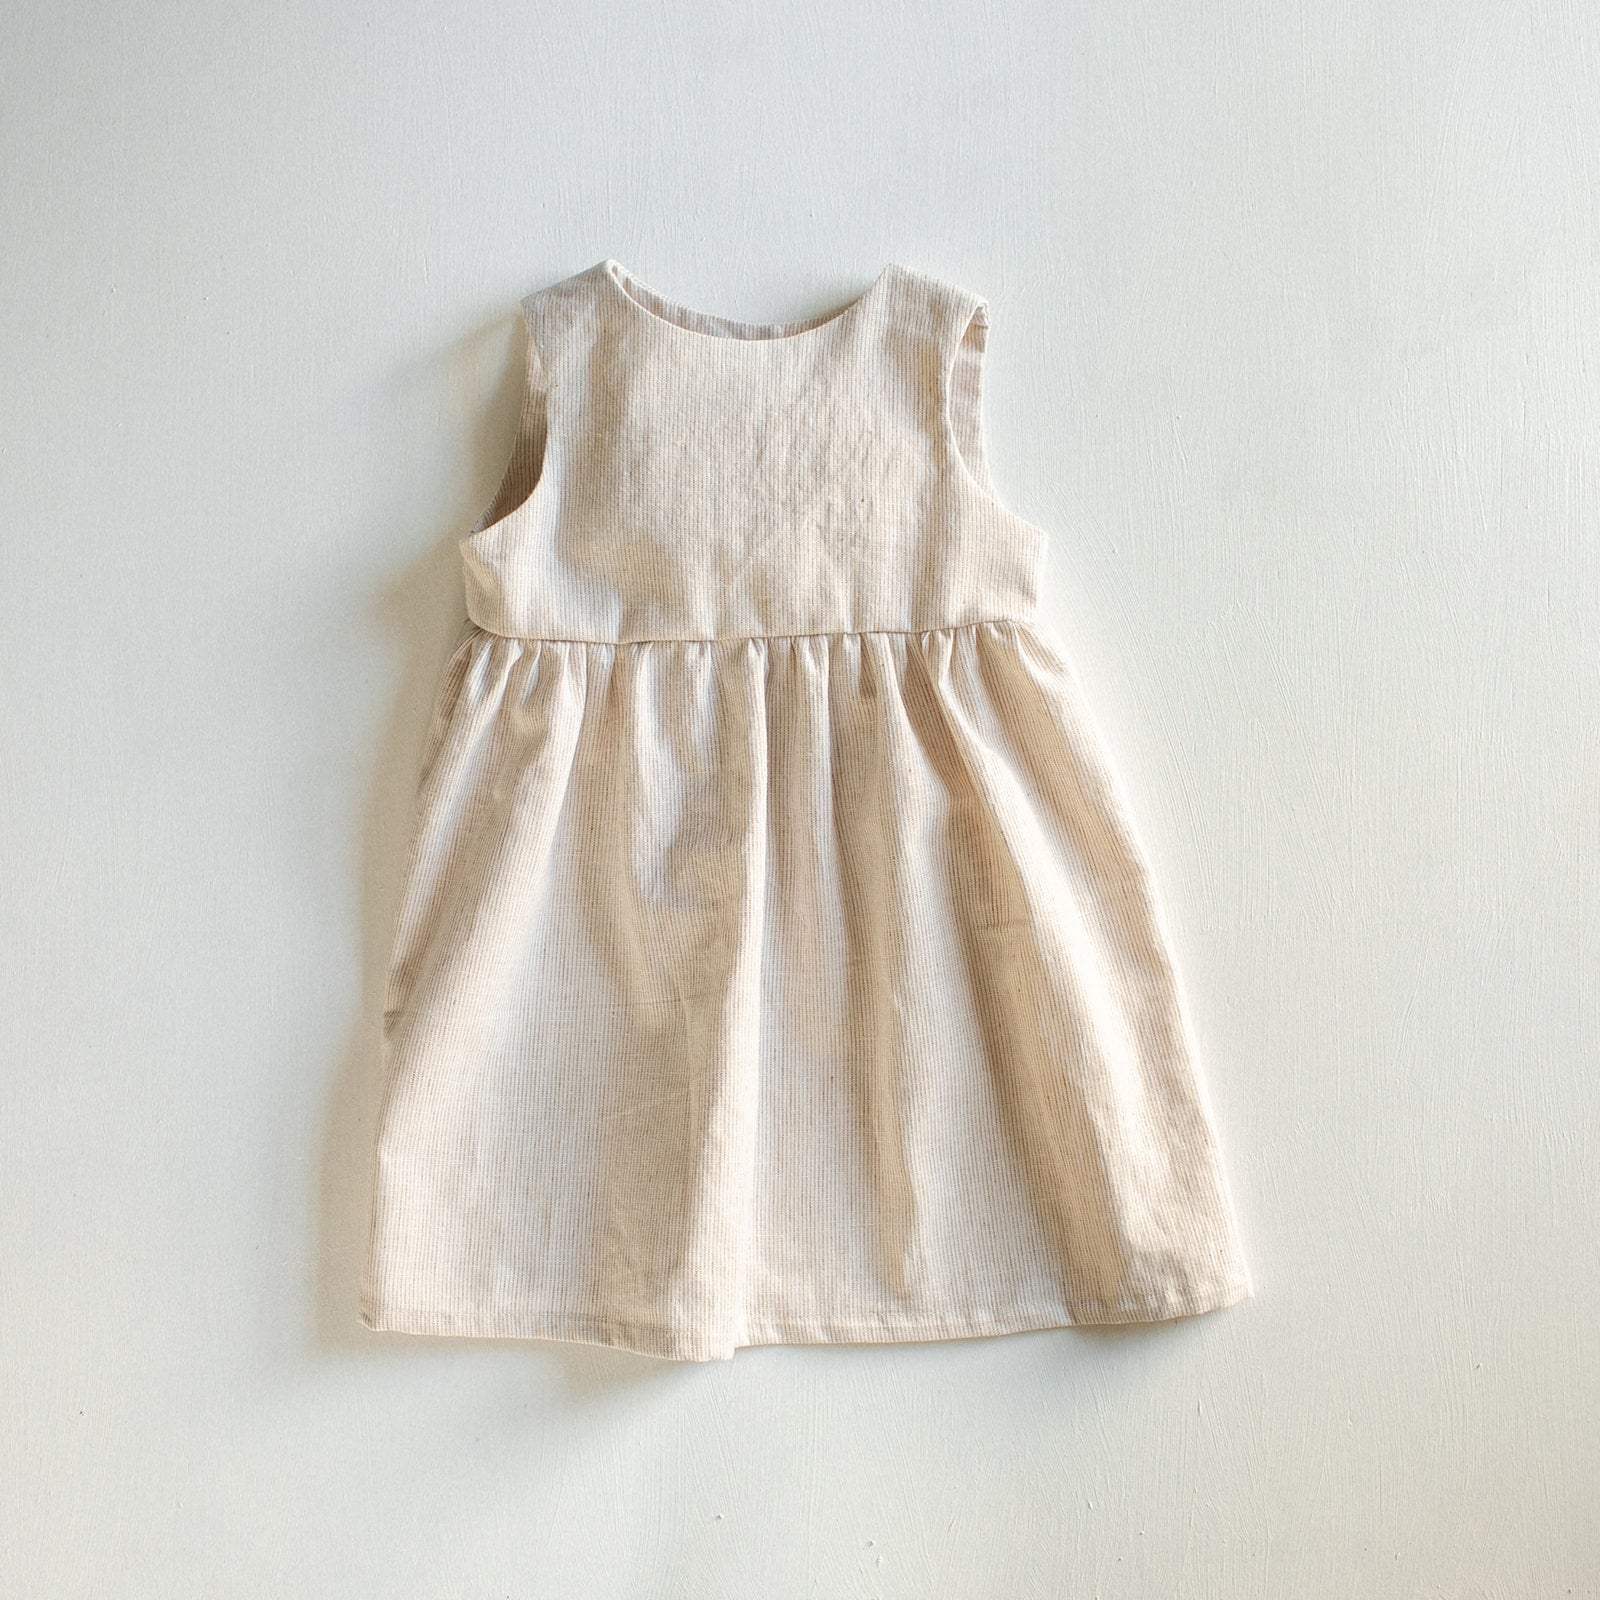 Ivory Charlotte Dress - Tortoise & the Hare Clothing | Naturally Dyed Kids Clothes